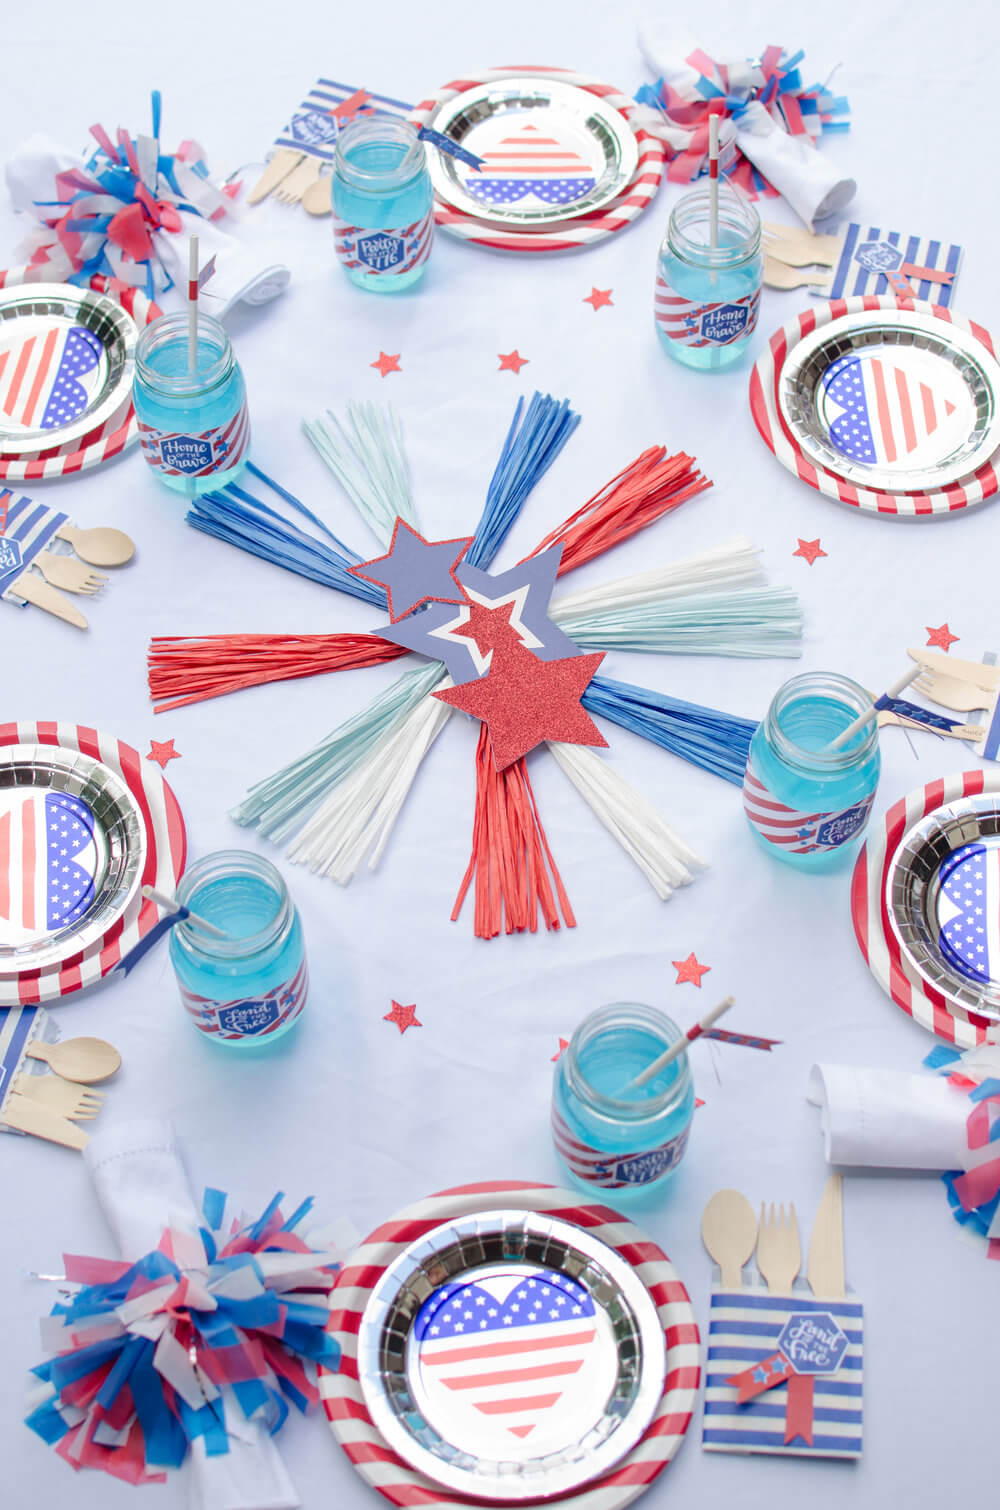 Beautiful and festive table decor filled with red, white, and blue, stripes, flags, stars, and fireworks!